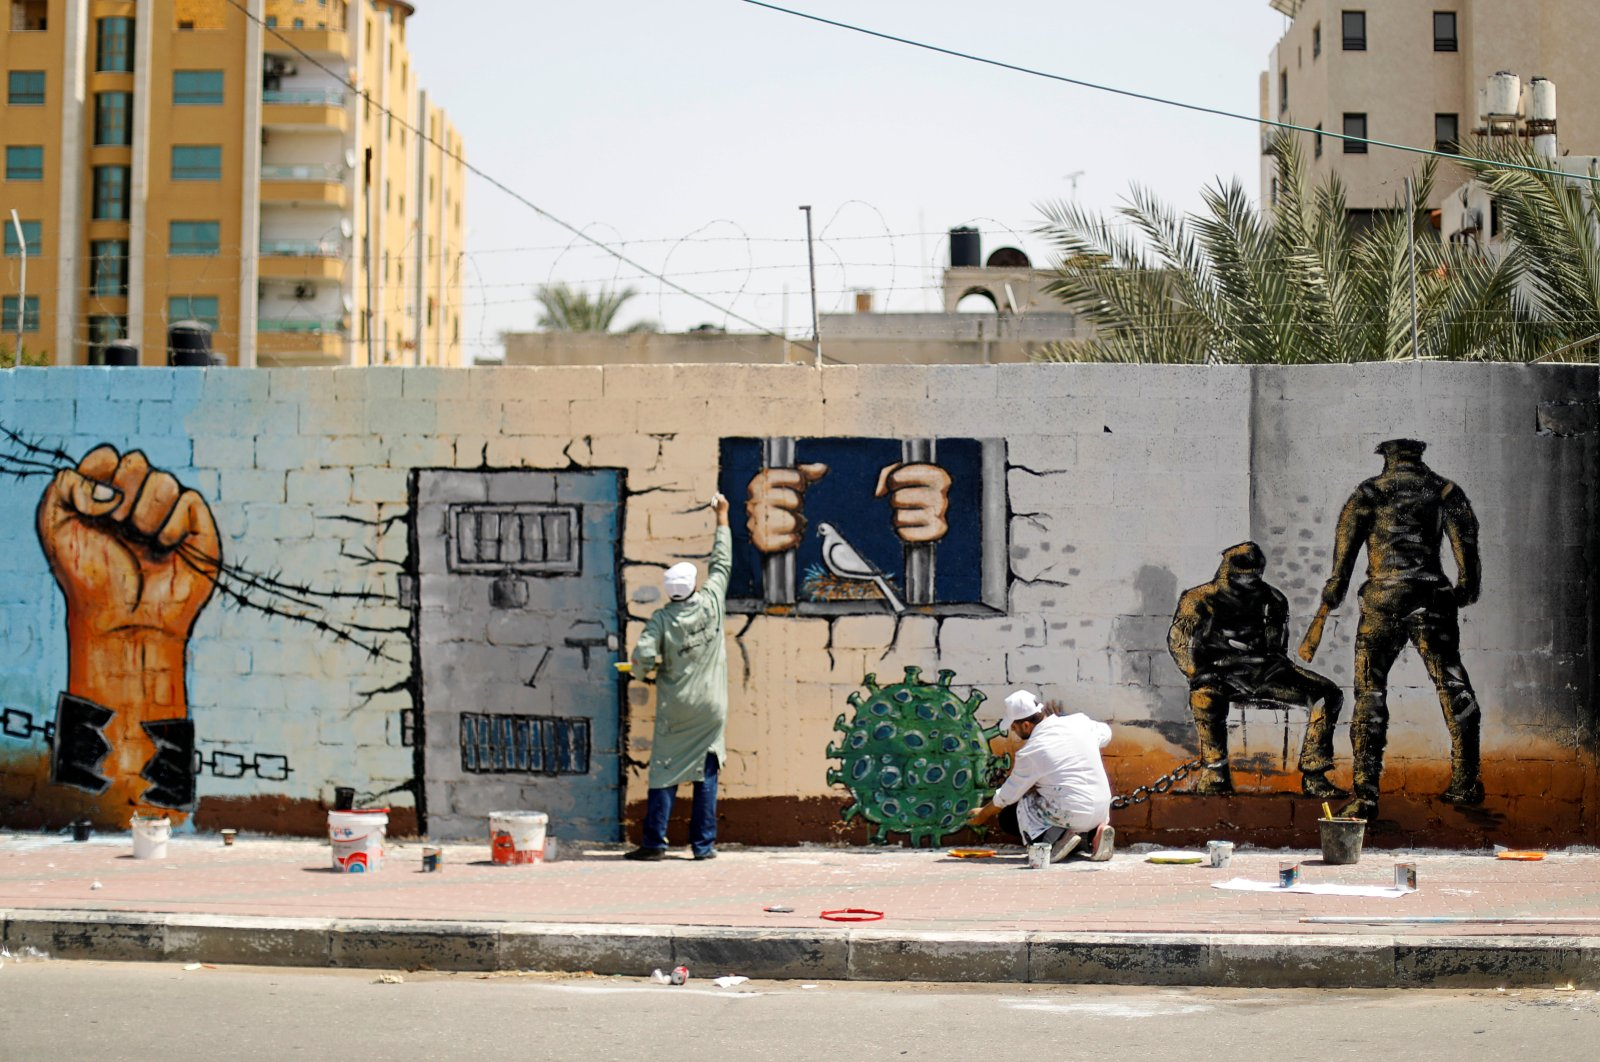 An artist paints a depiction of the microscopic view of the coronavirus chained to a prisoner as part of a mural in support of Palestinians held in Israeli jails, amid concerns about the spread of COVID-19, in Gaza City, Palestine, April 20, 2020. (Reuters Photo)